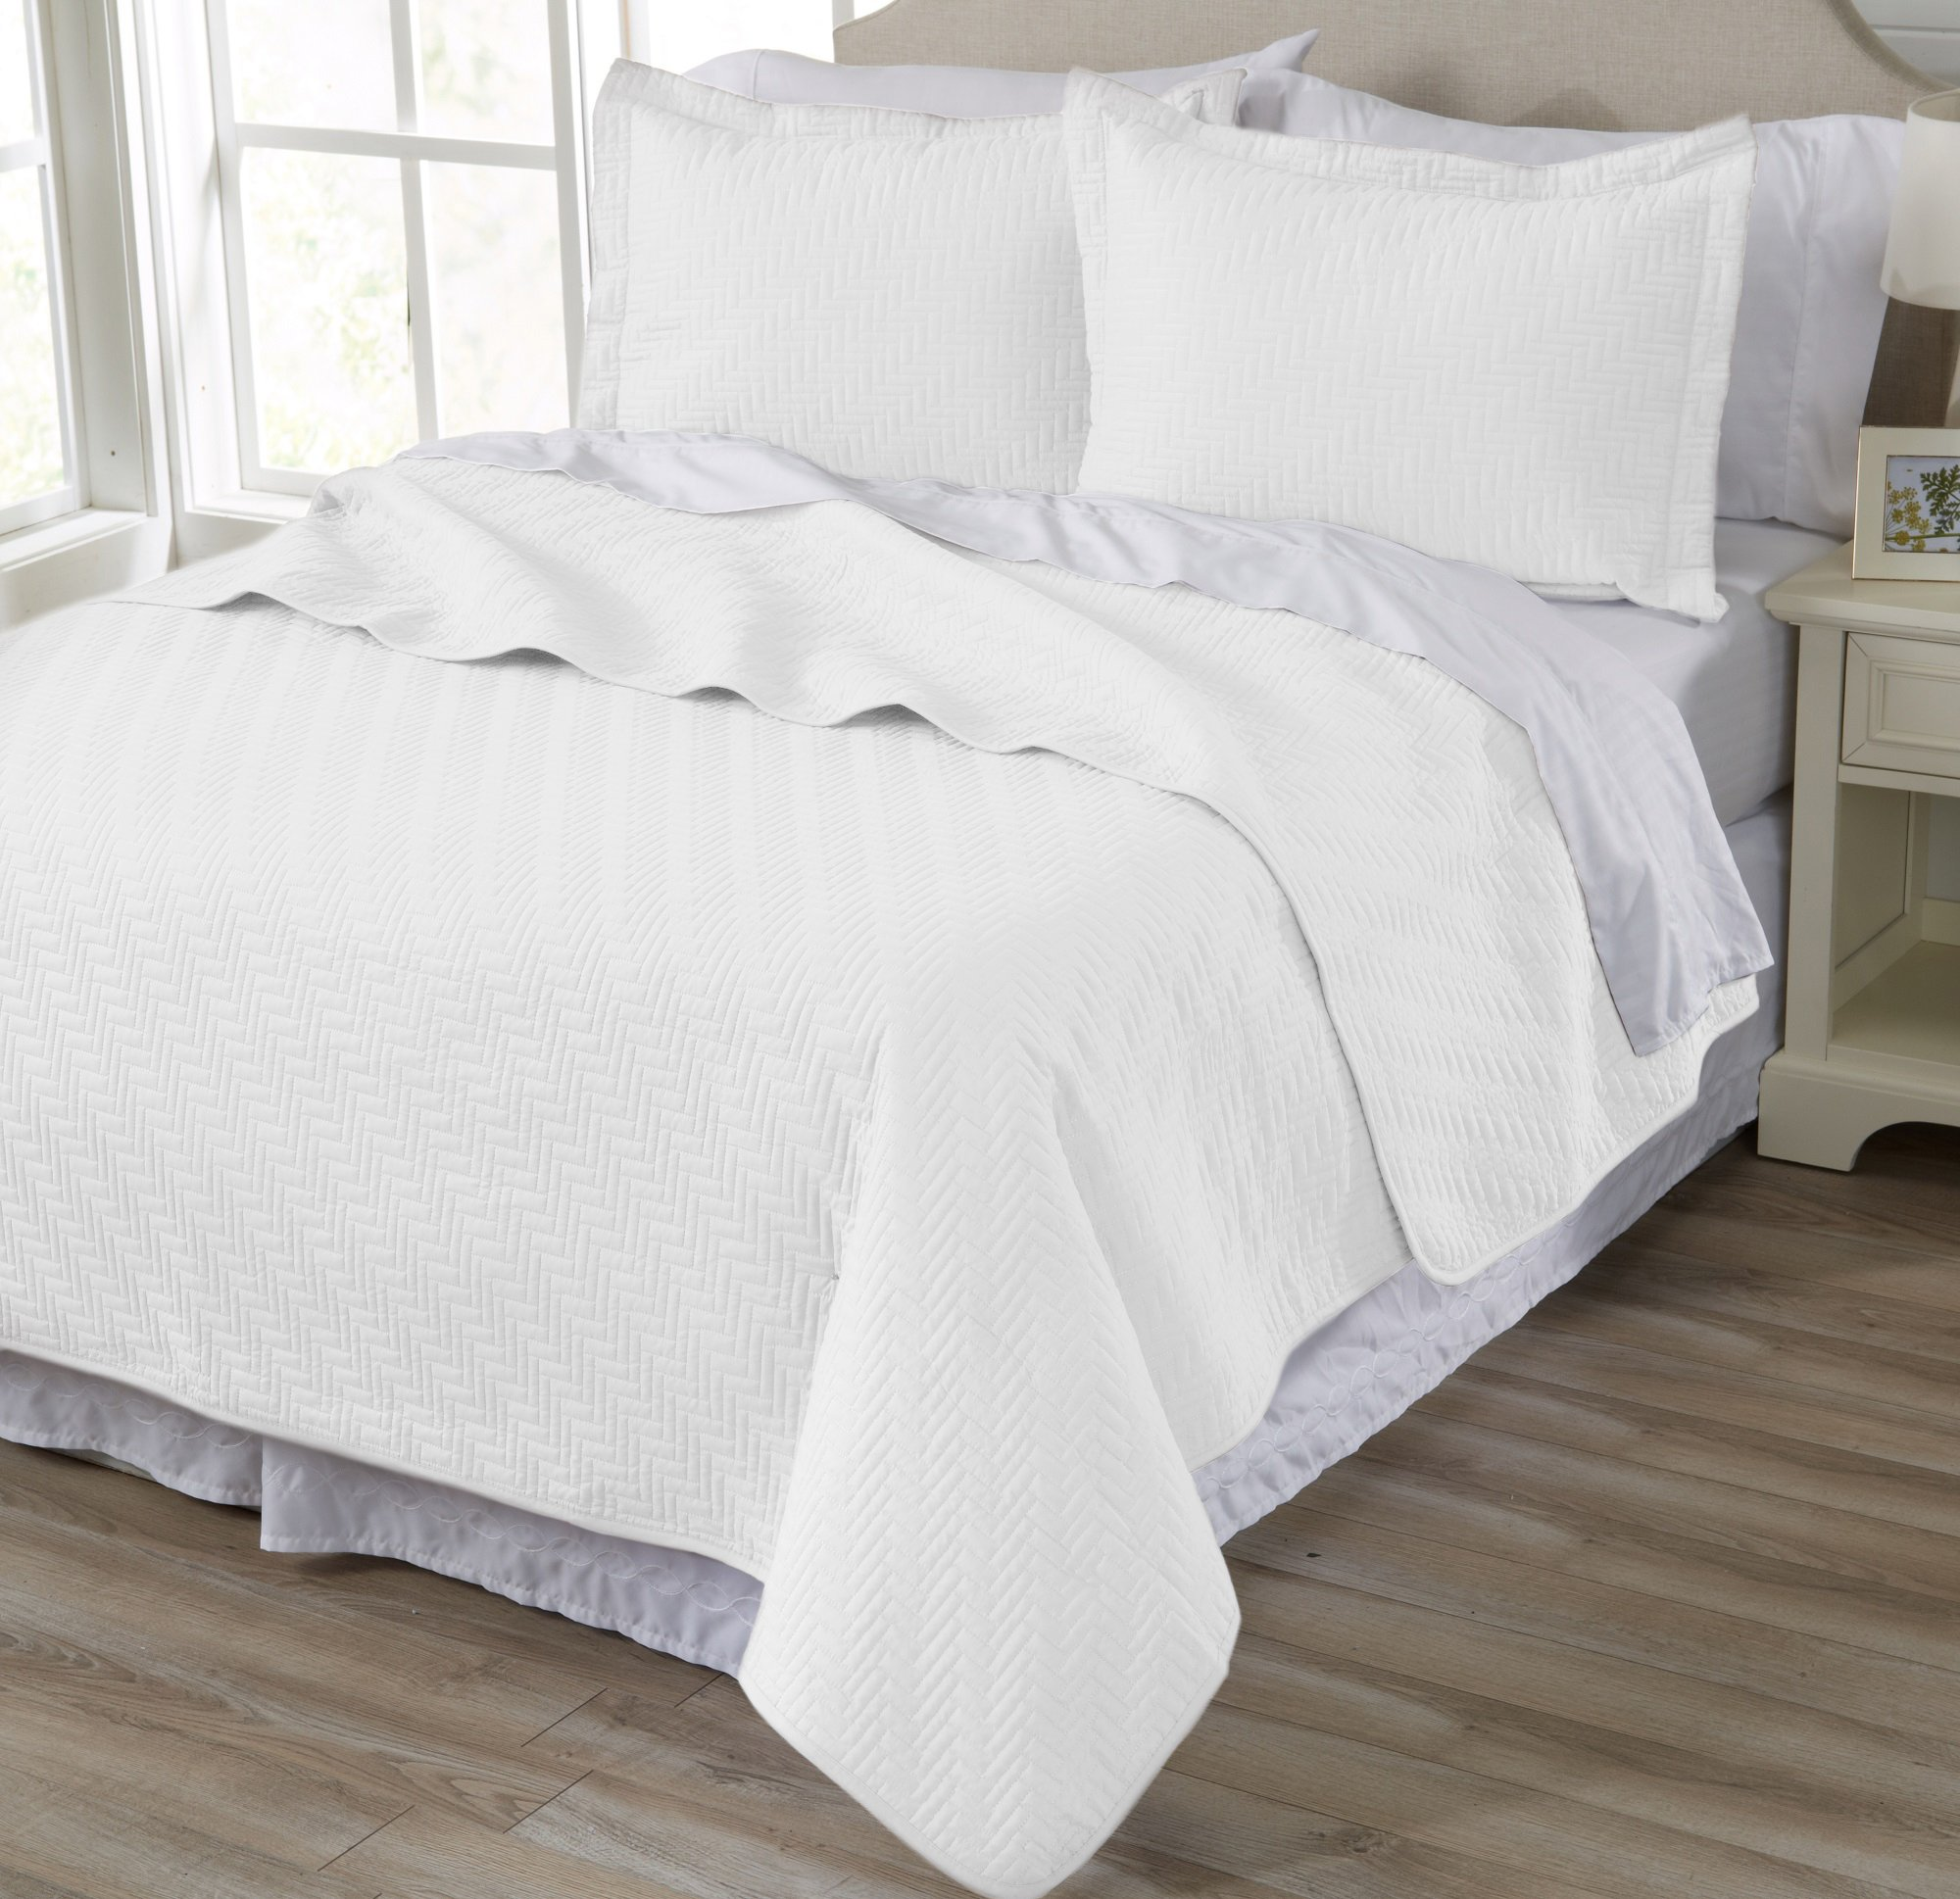 Home Fashion Designs Emerson Collection 3-Piece Luxury Quilt Set with Shams. Soft All-Season Microfiber Bedspread and Coverlet in Solid Colors. By Brand. (Full/Queen, White)